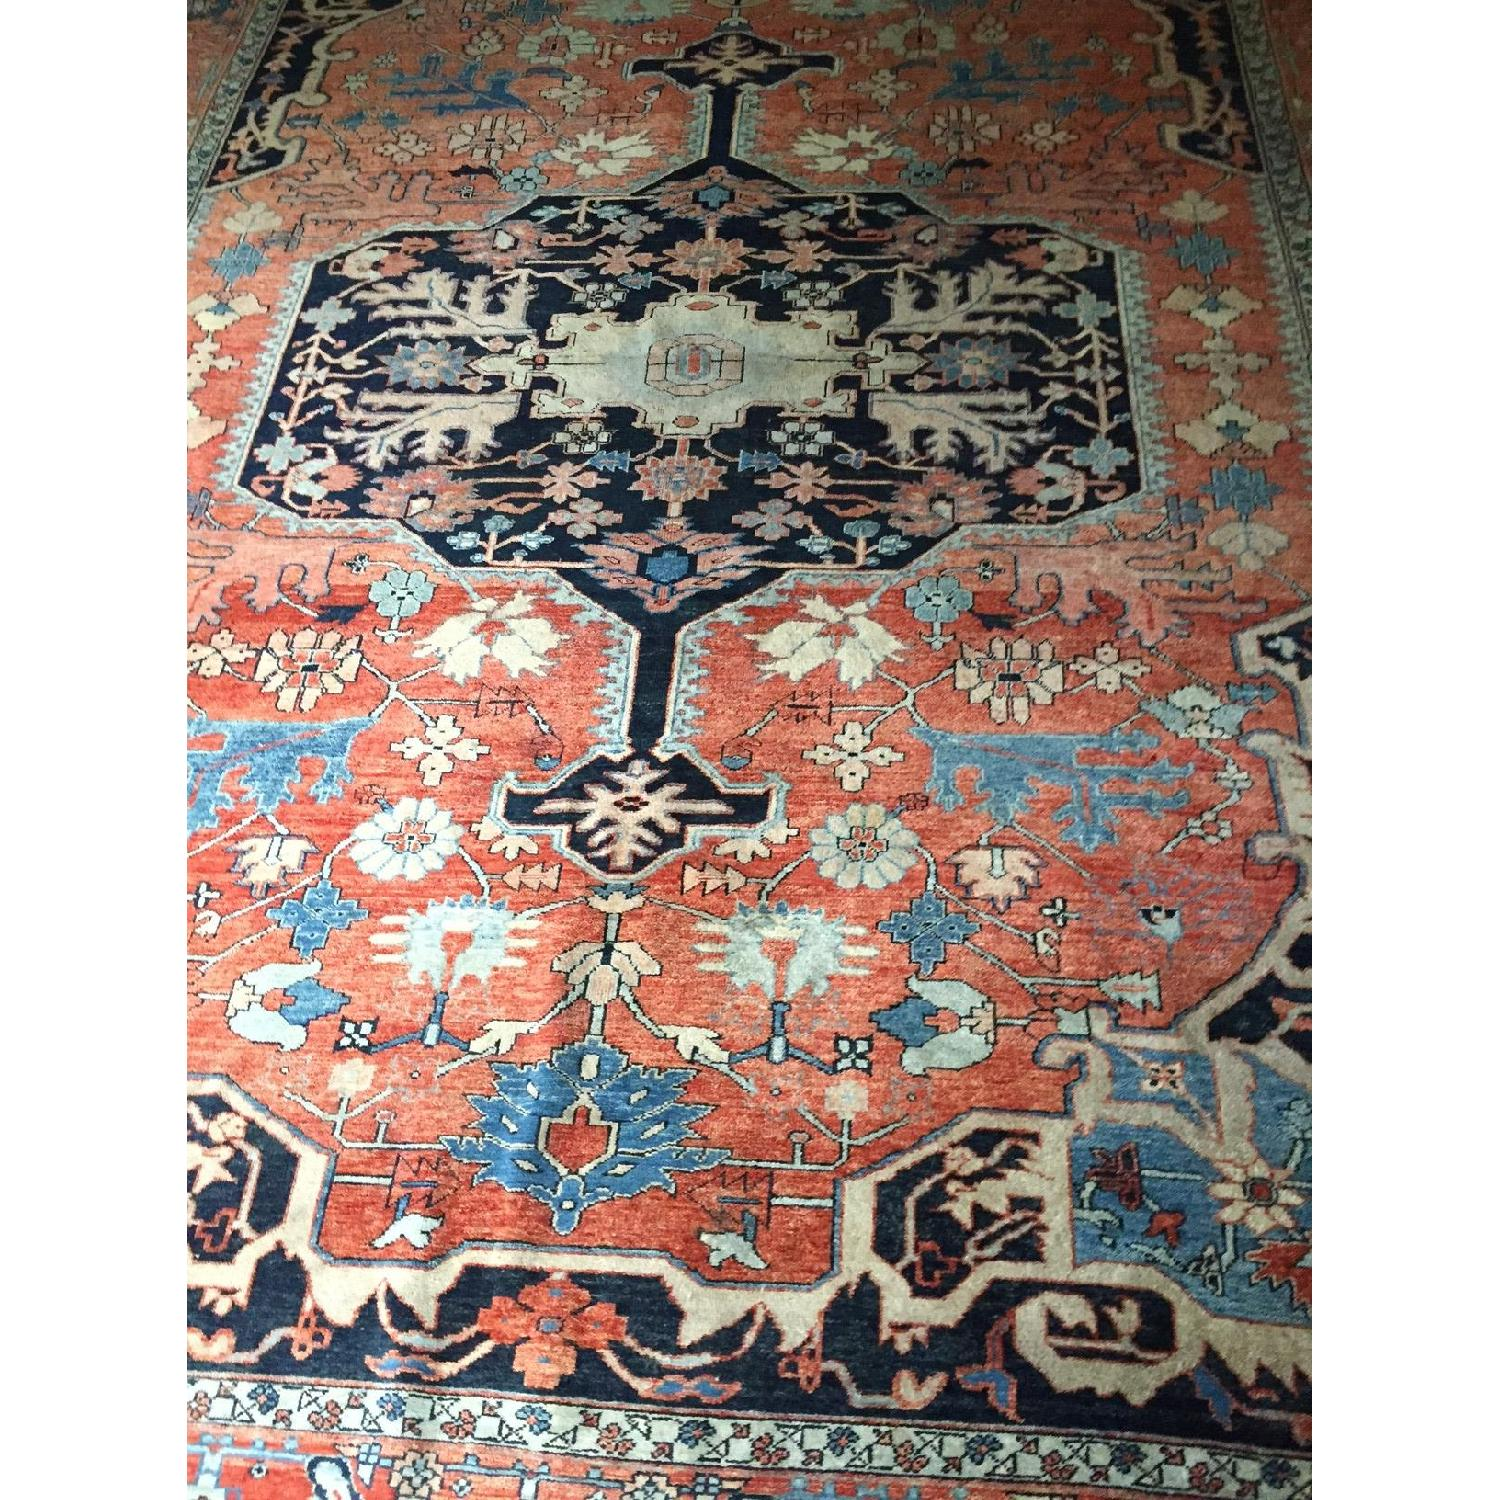 ABC Carpet & Home Woven Legends Turkish Rug - image-13